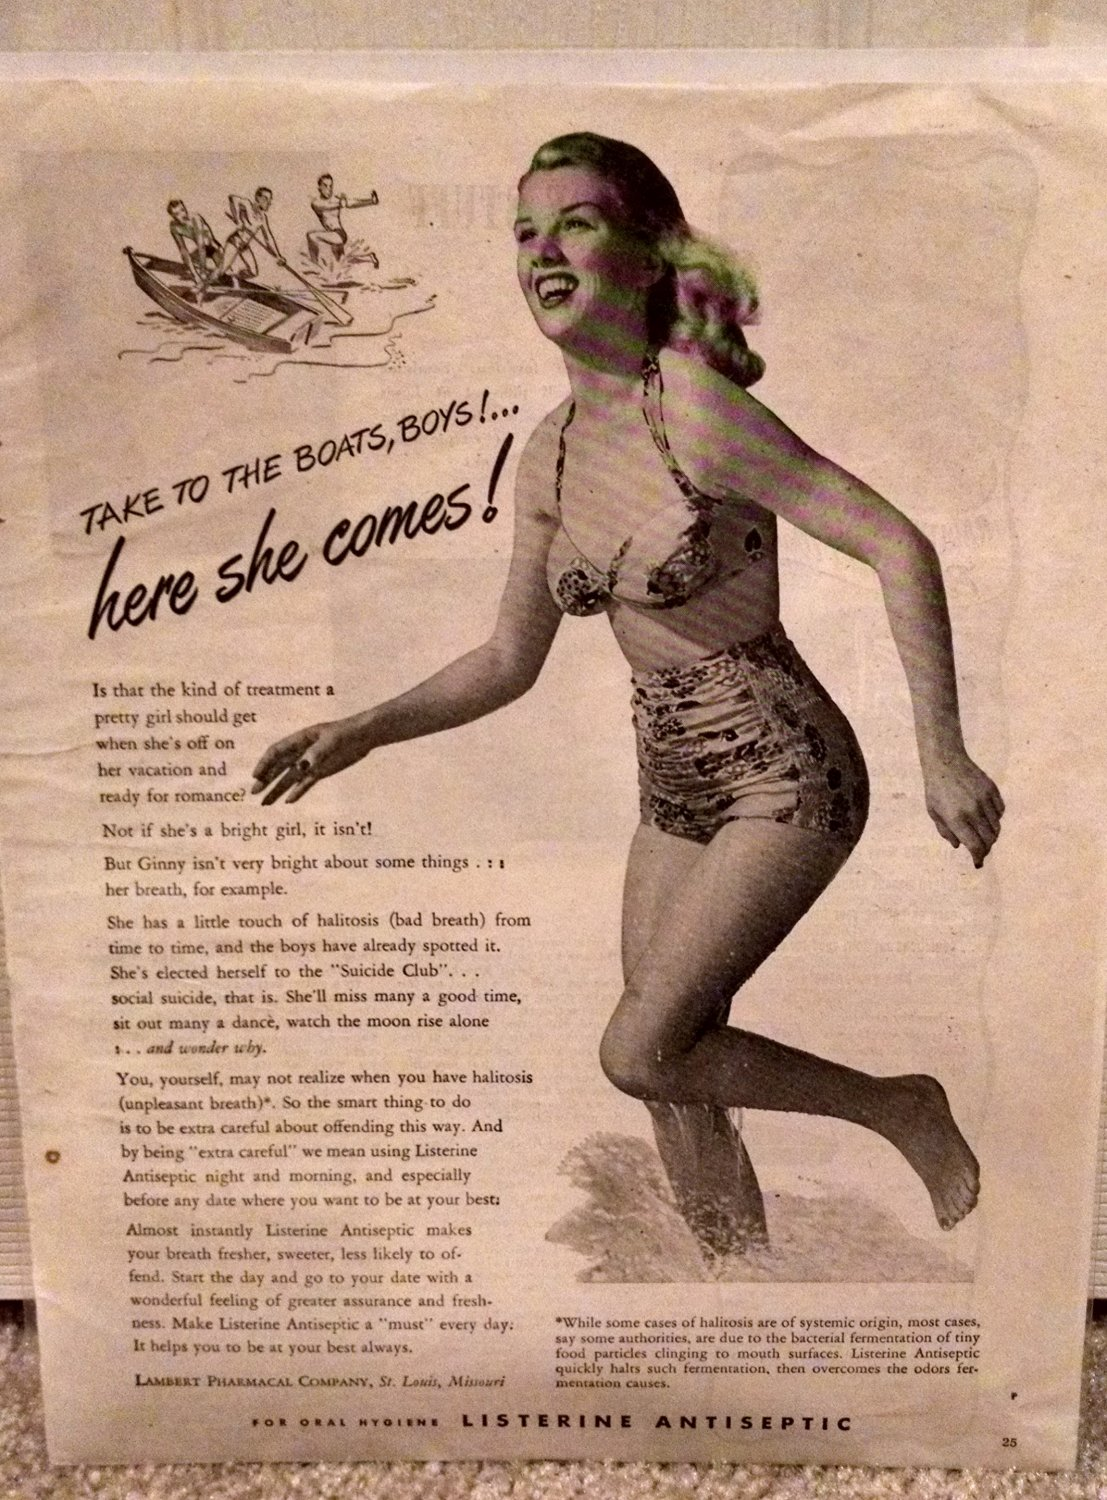 Listerine Antiseptic Original Vintage Advertisement with Bathing Beauty